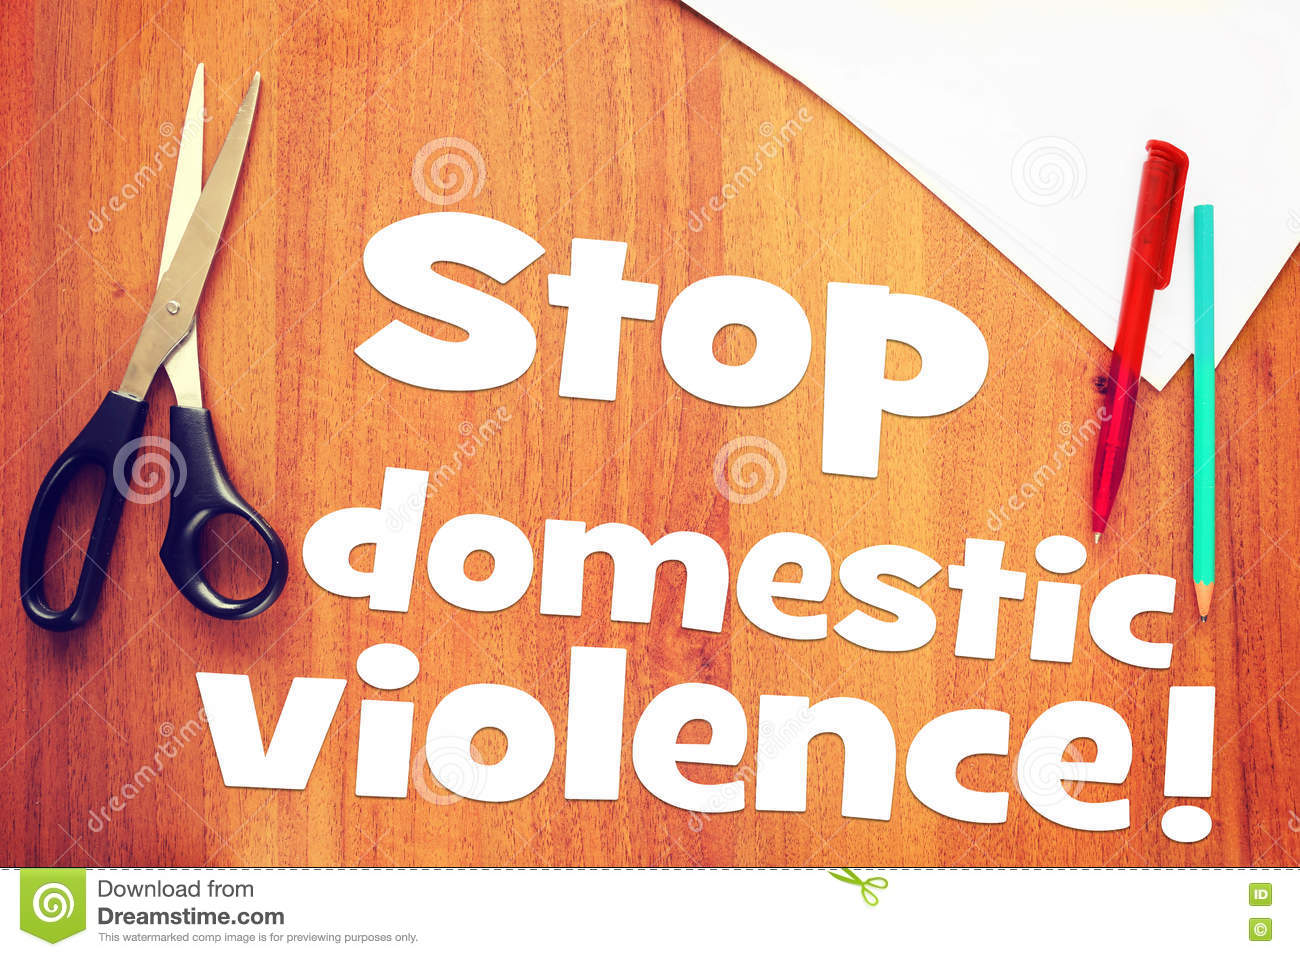 Request to stop domestic violence